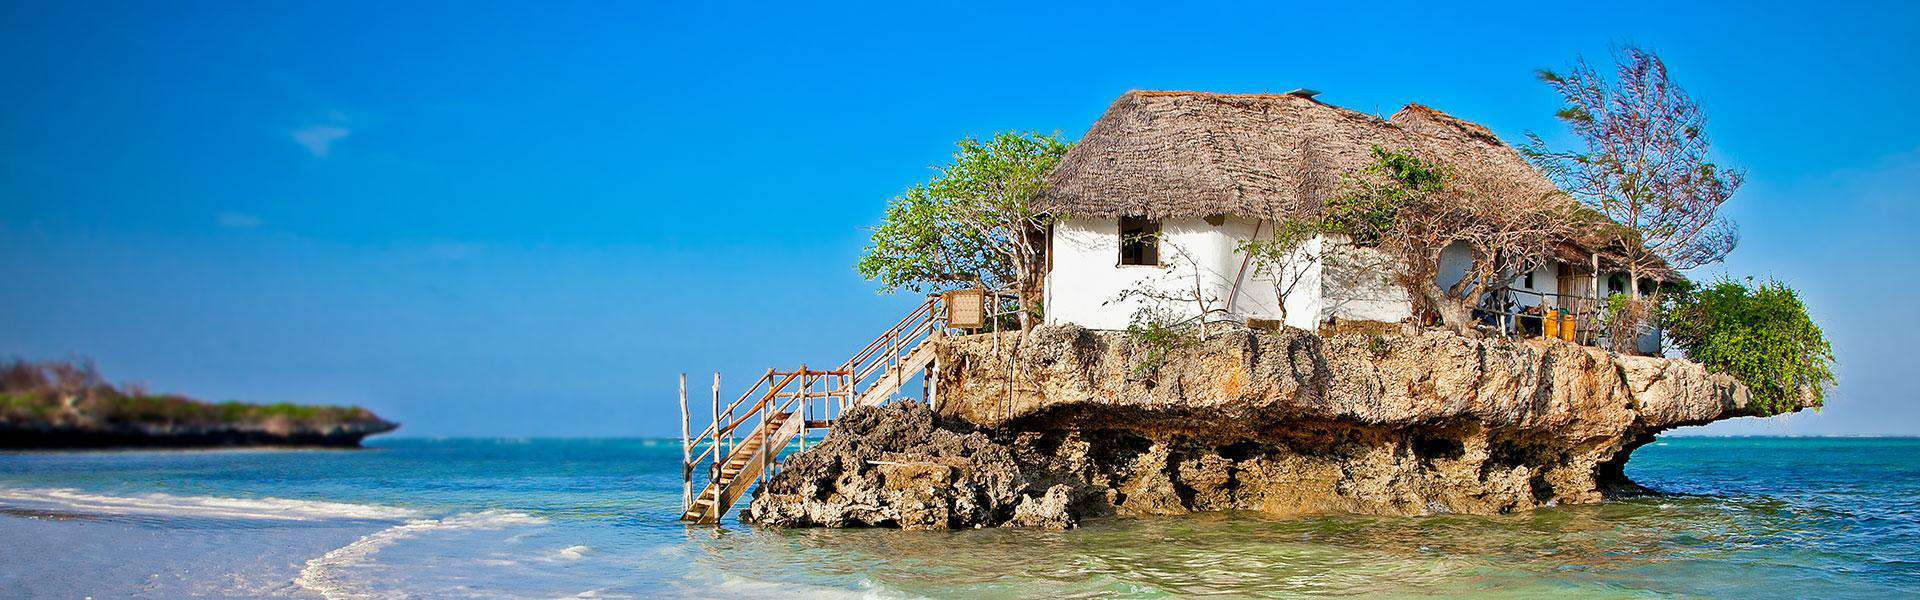 Travel to Zanzibar Holidays